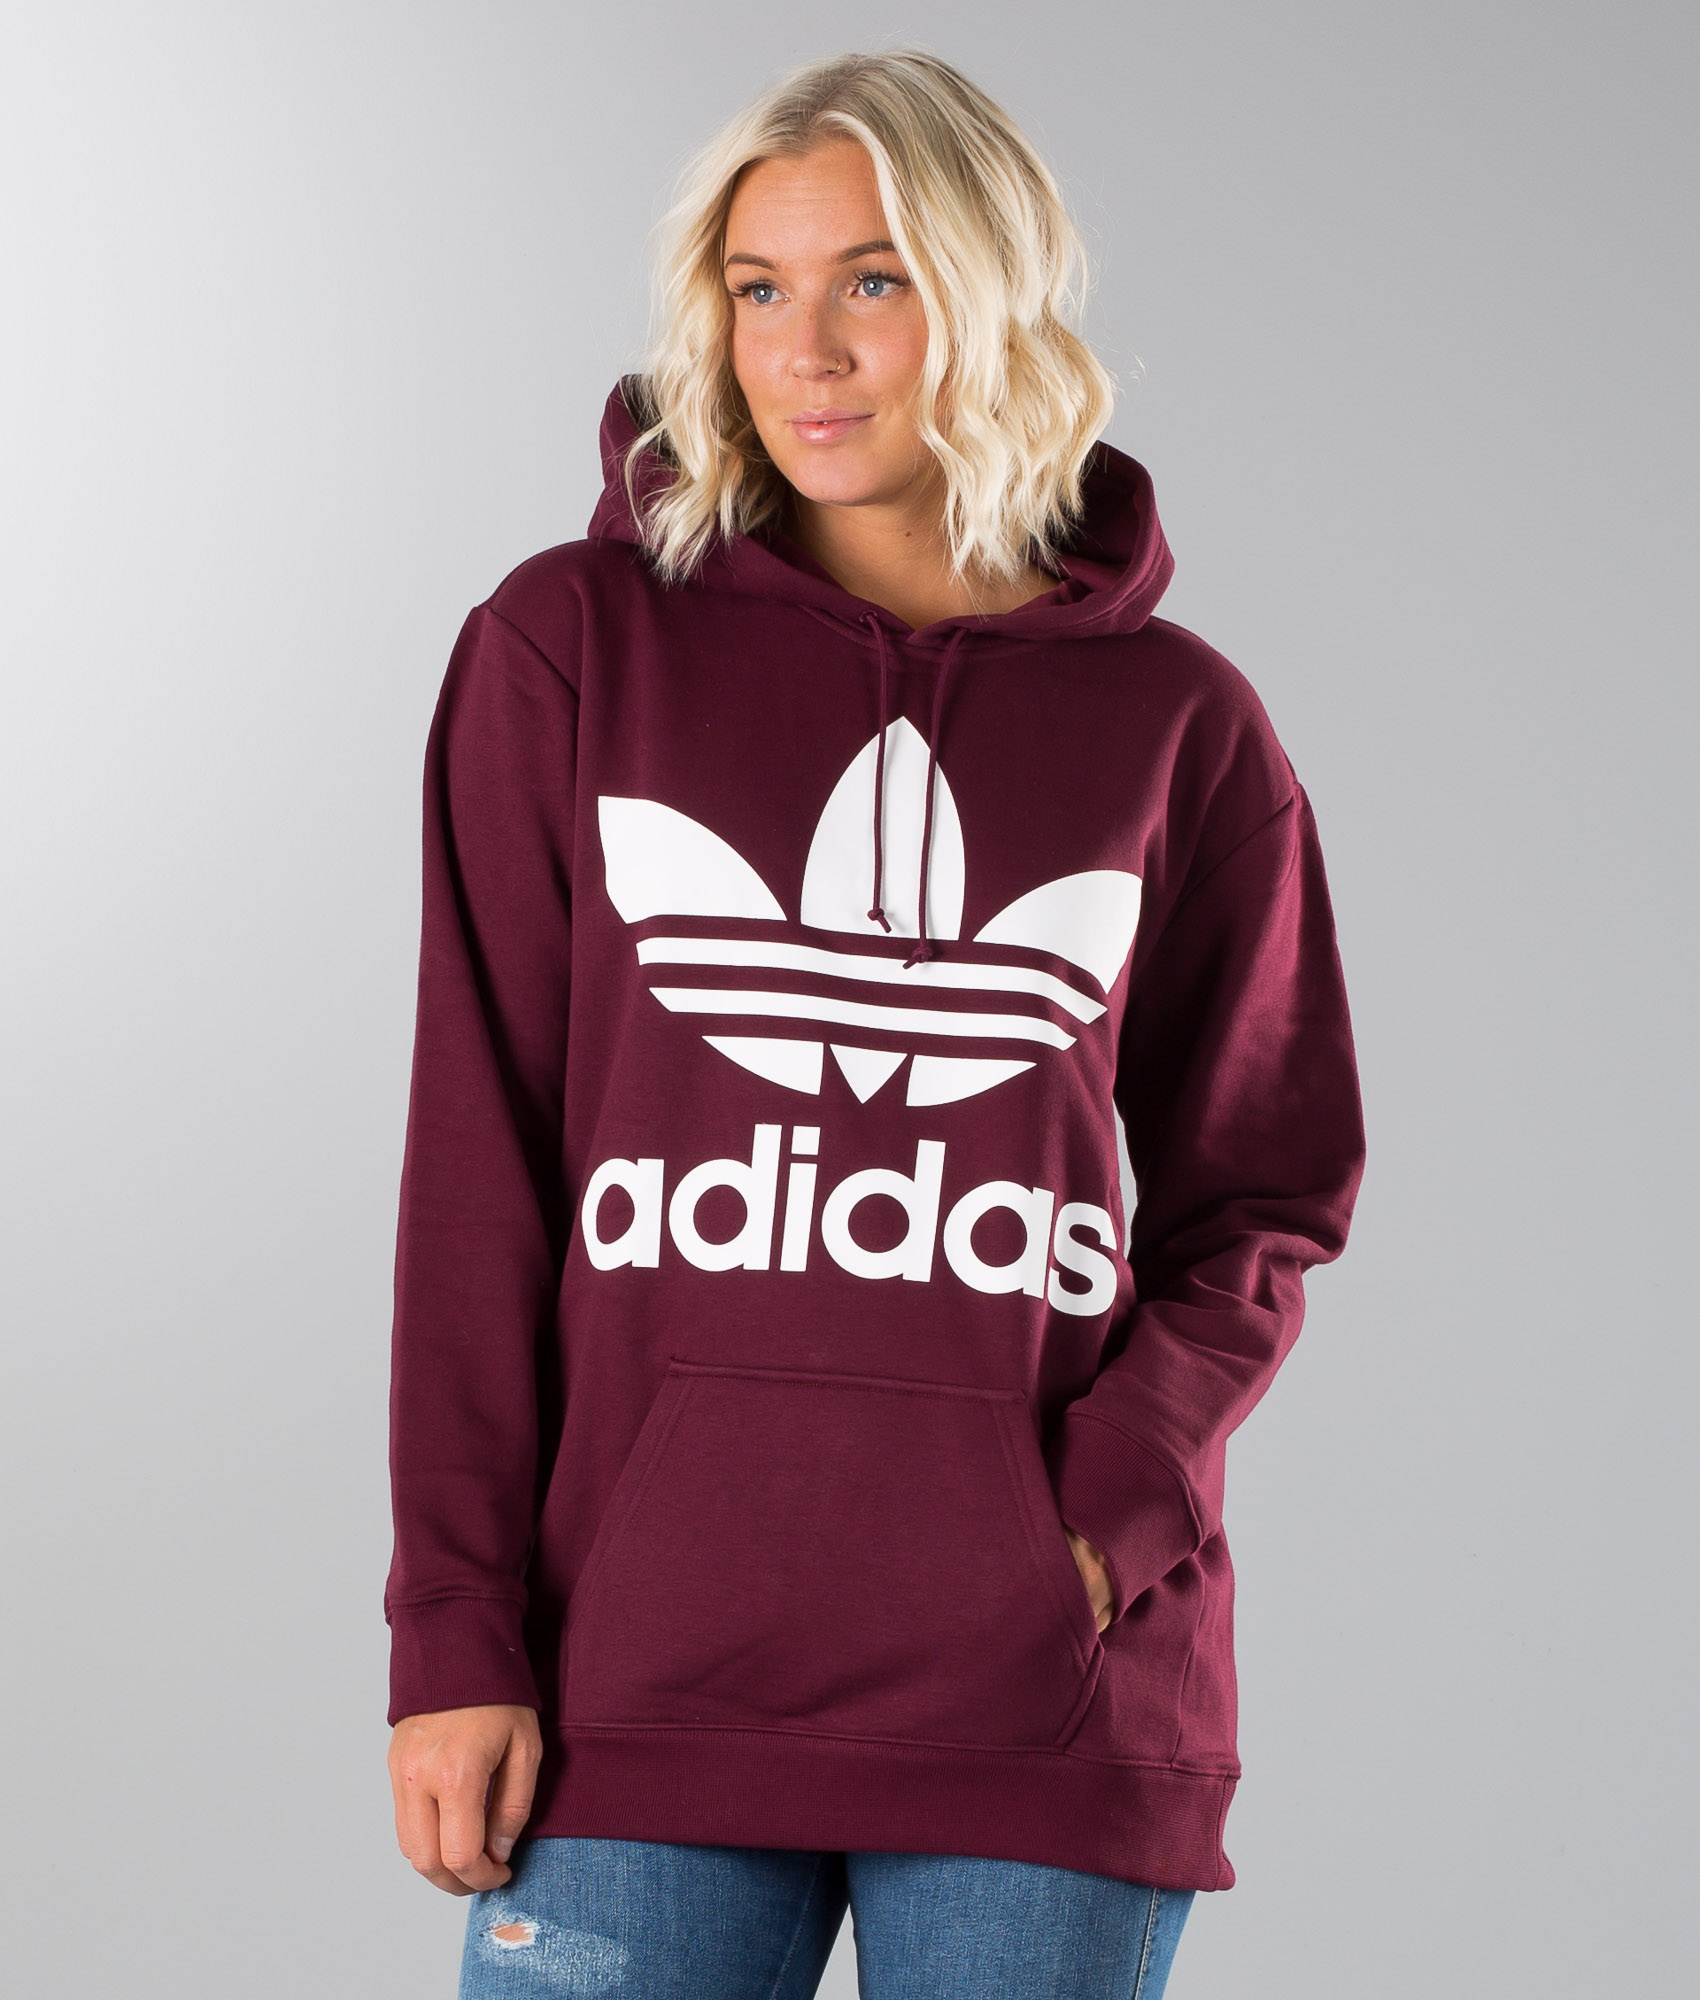 adidas hoodie shirt 61% di sconto sglabs.it